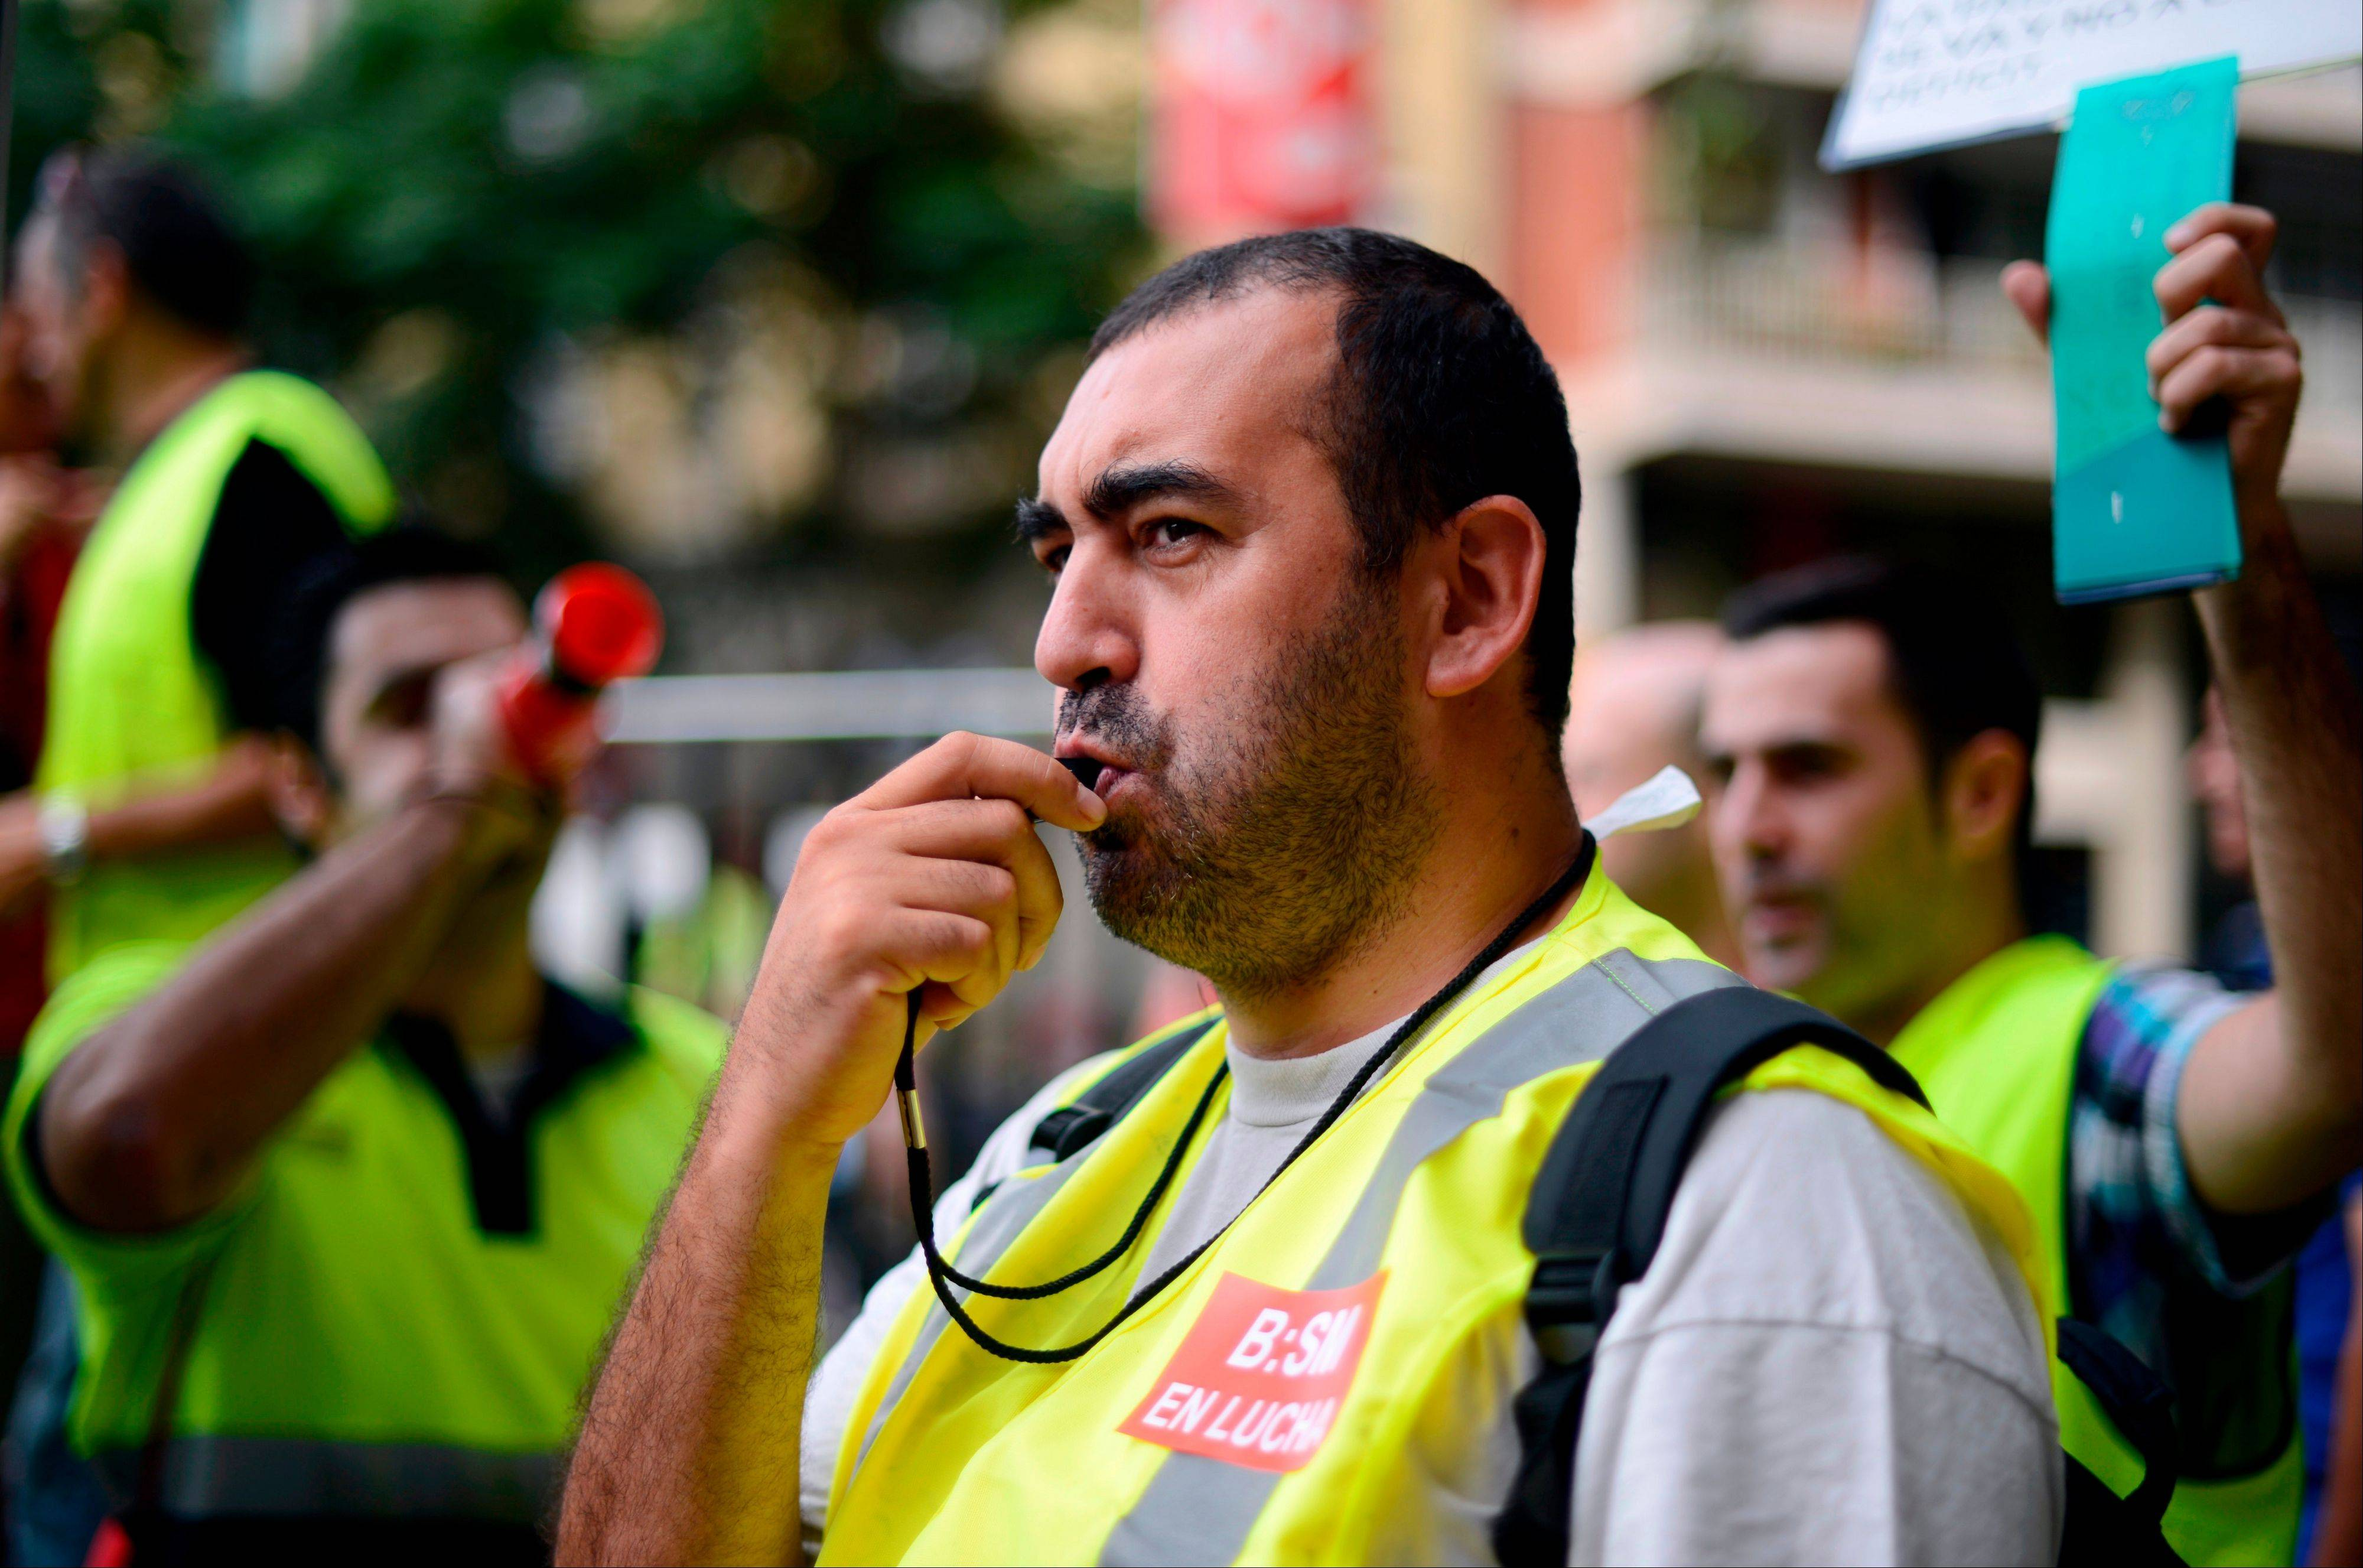 A Government employee protests against cuts in Barcelona, Spain, Monday, July 30, 2012.